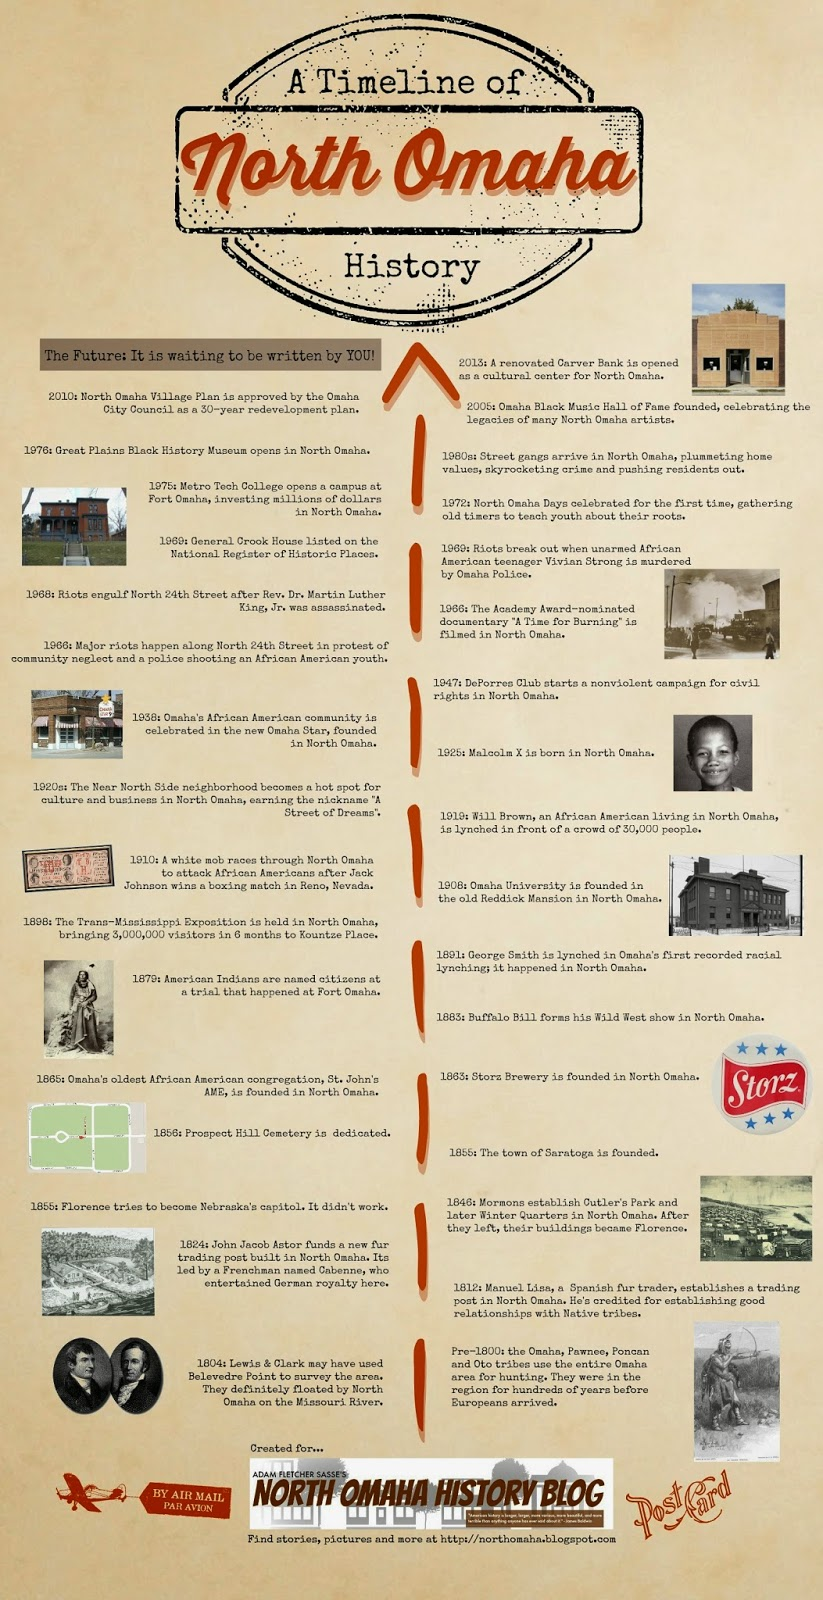 A Timeline of North OmahaHistory